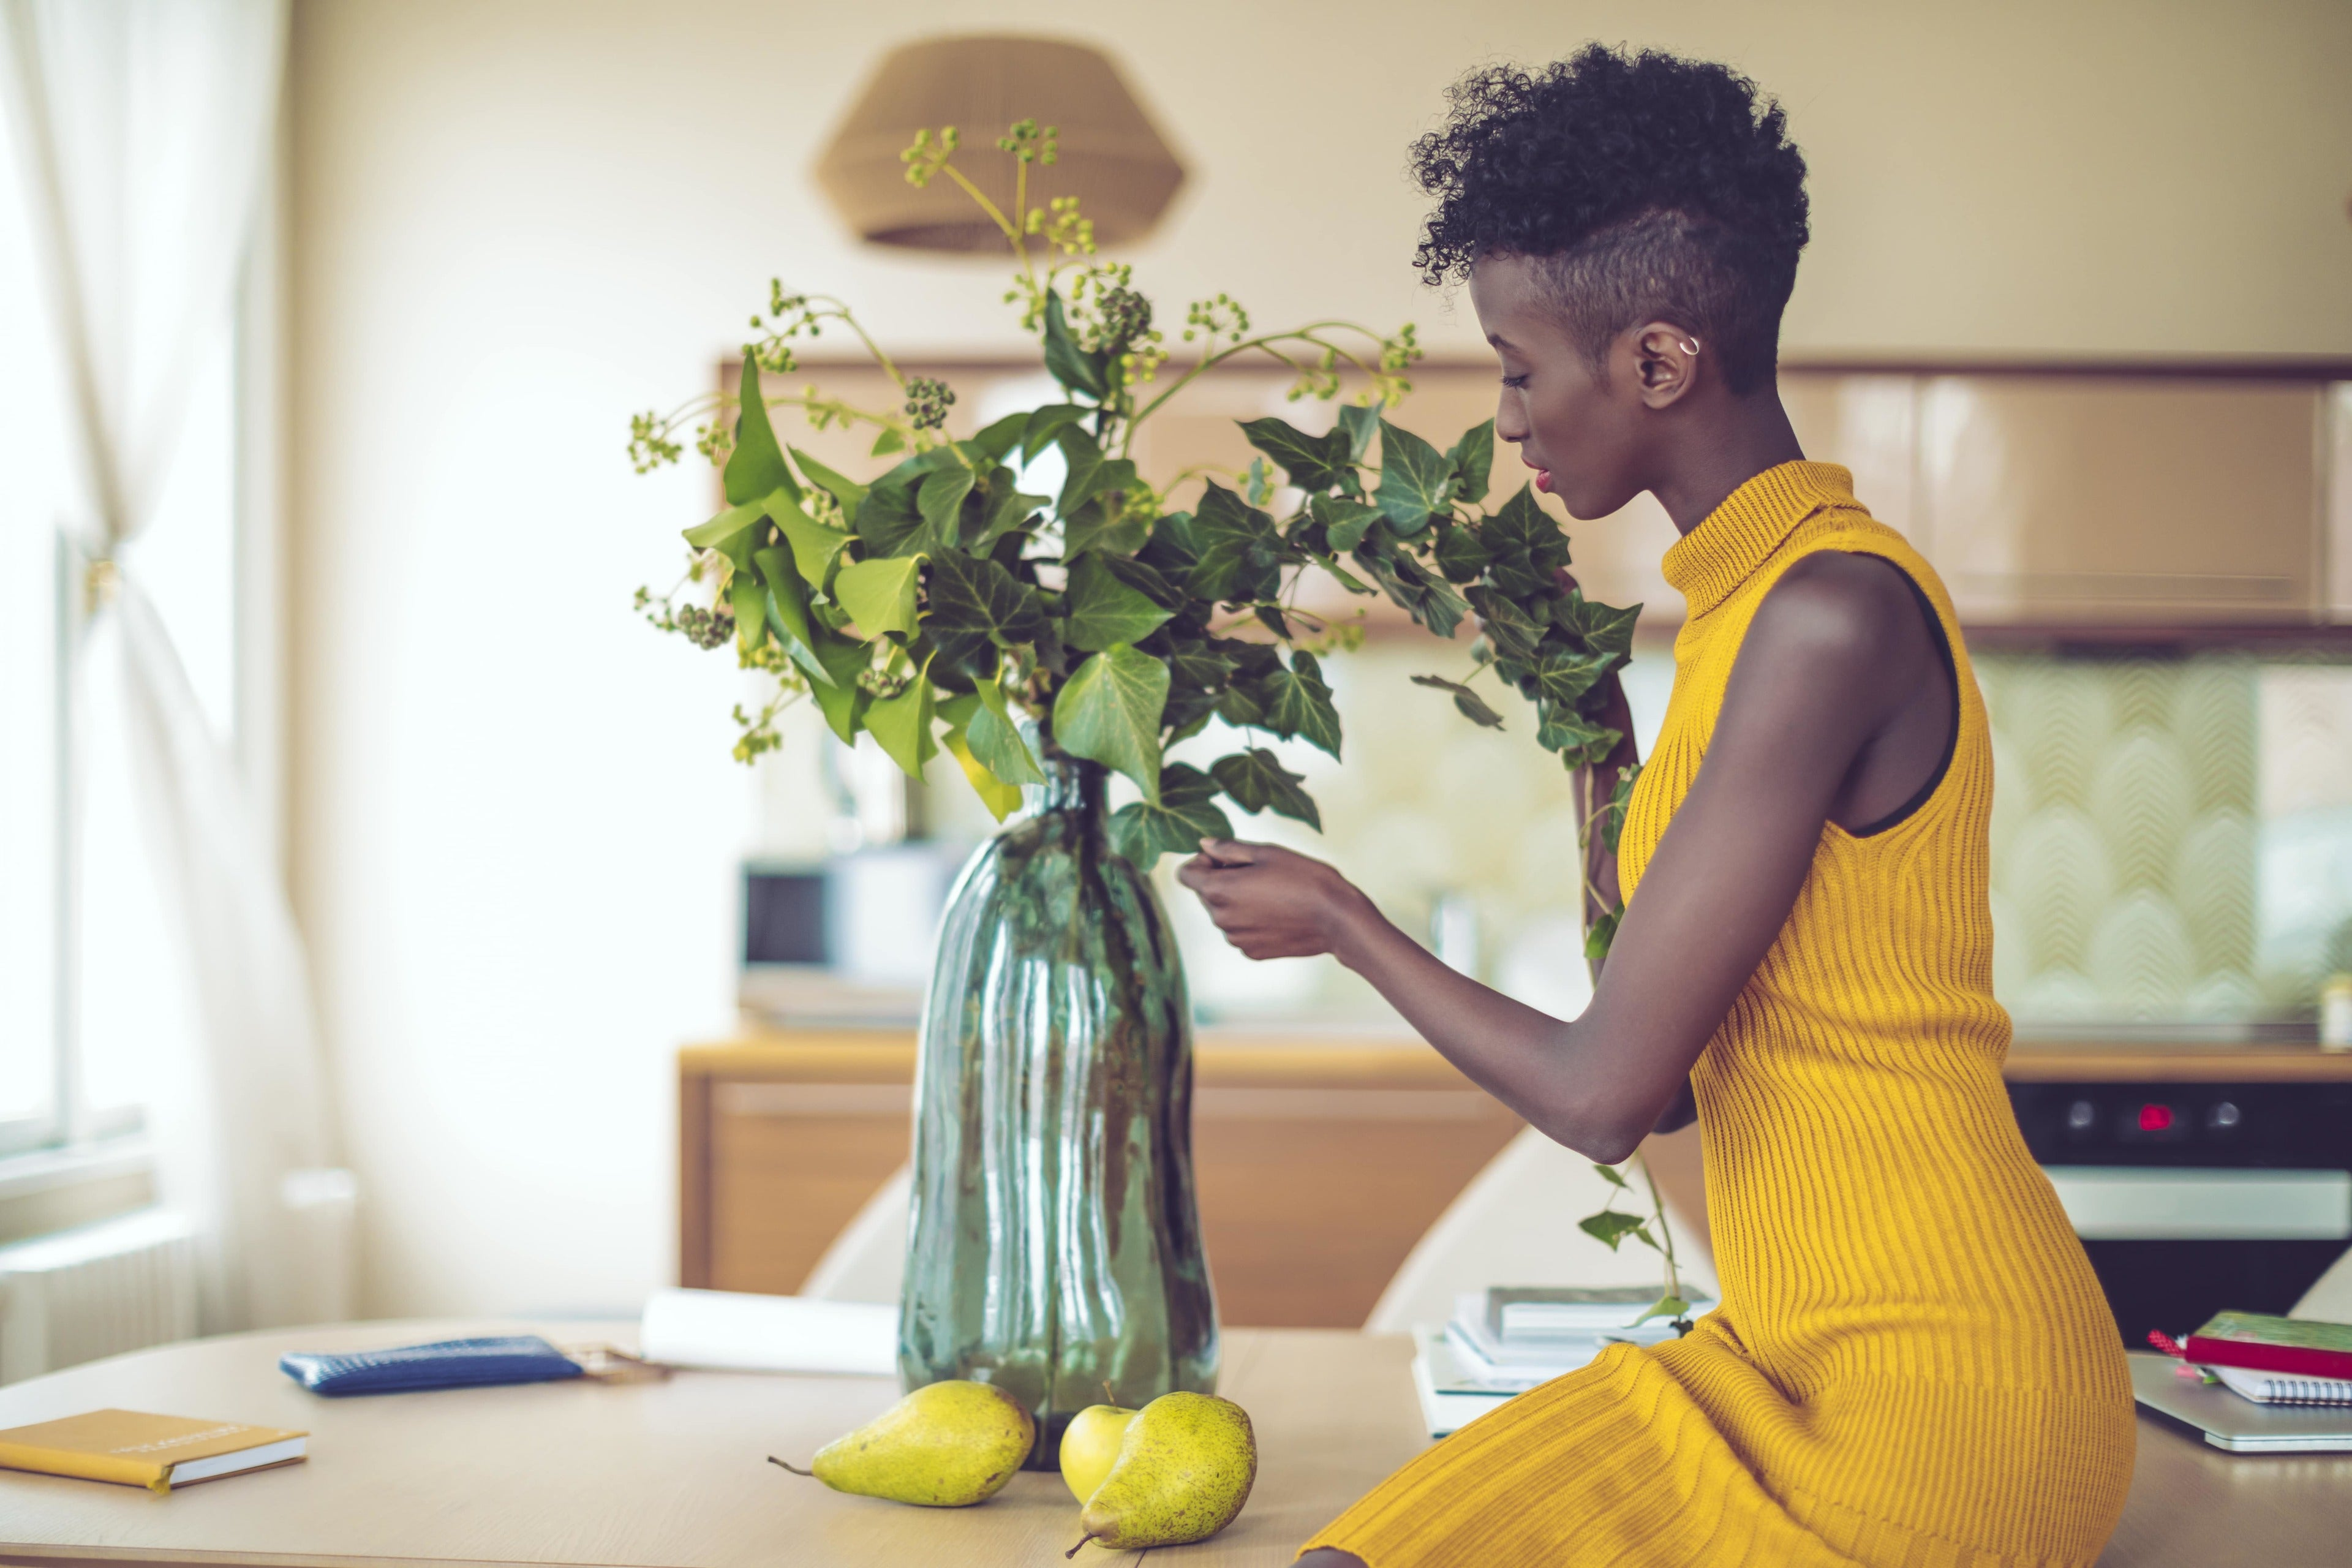 5 Floral Subscription Services To Brighten Your Home On Valentine's Day And Beyond